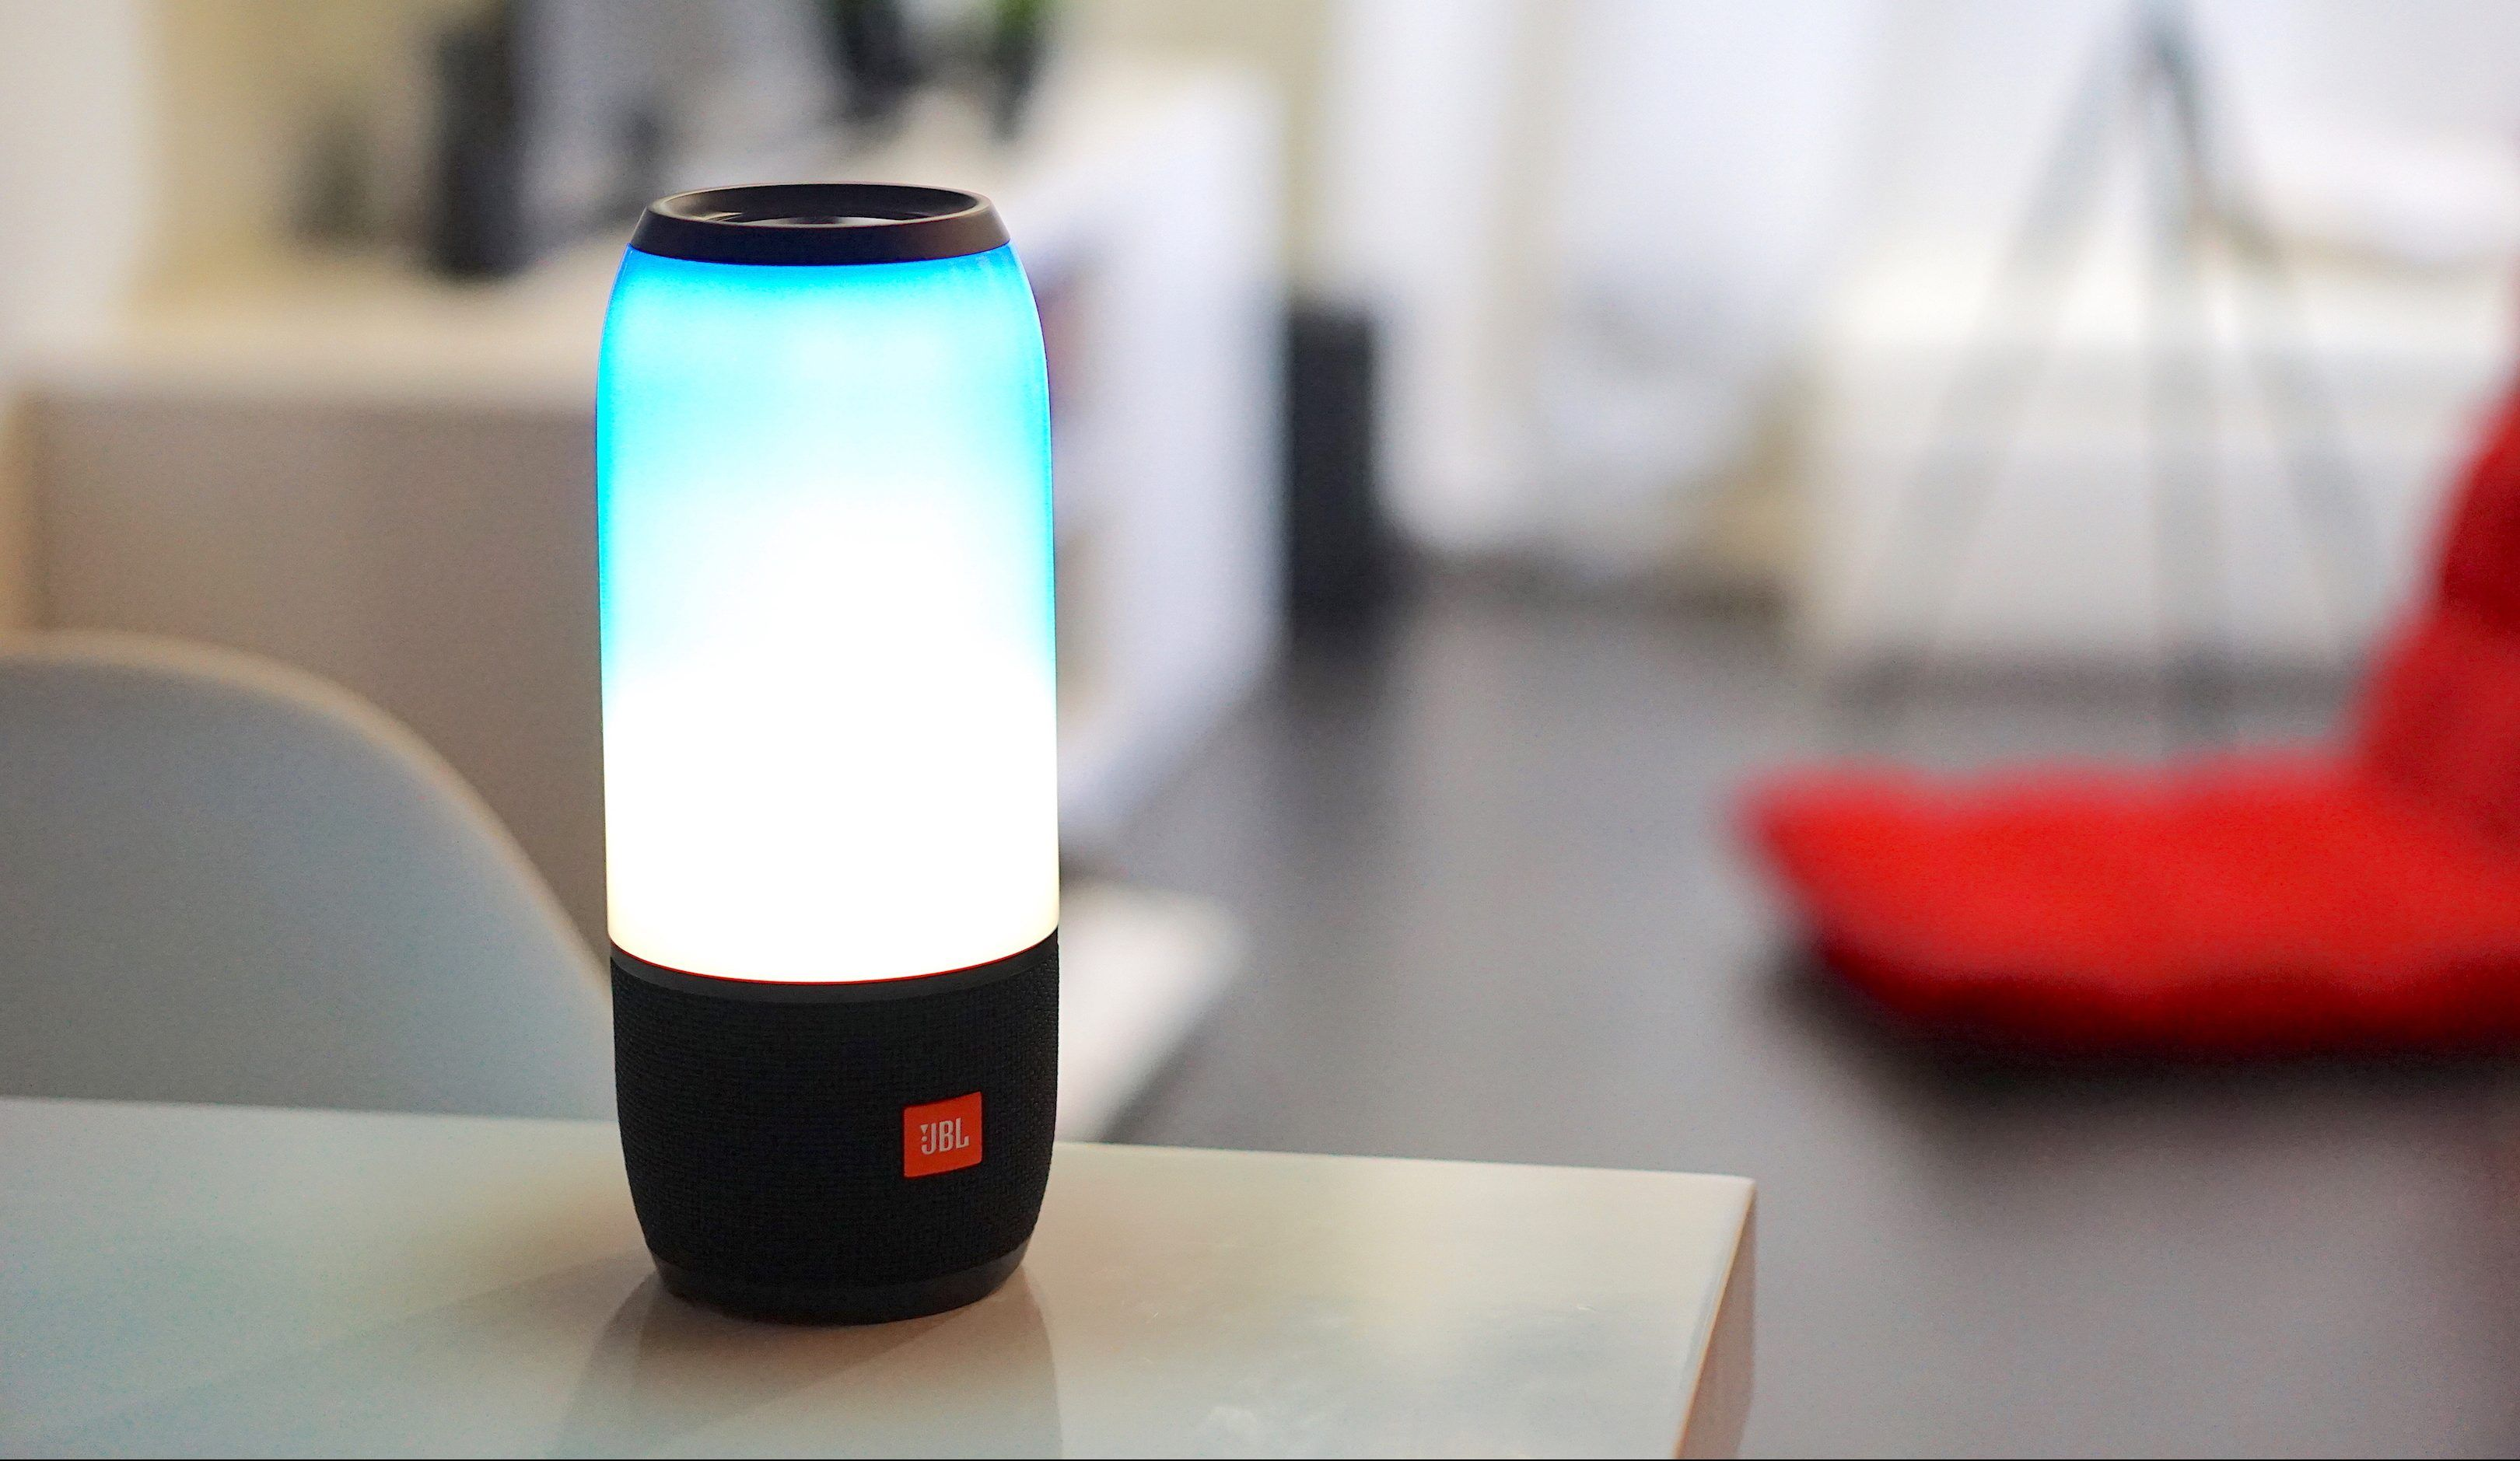 Lava Lamp Speaker Captivating Review  Jbl Pulse 3 Speaker The Lava Lamp That Sings  Http Design Inspiration